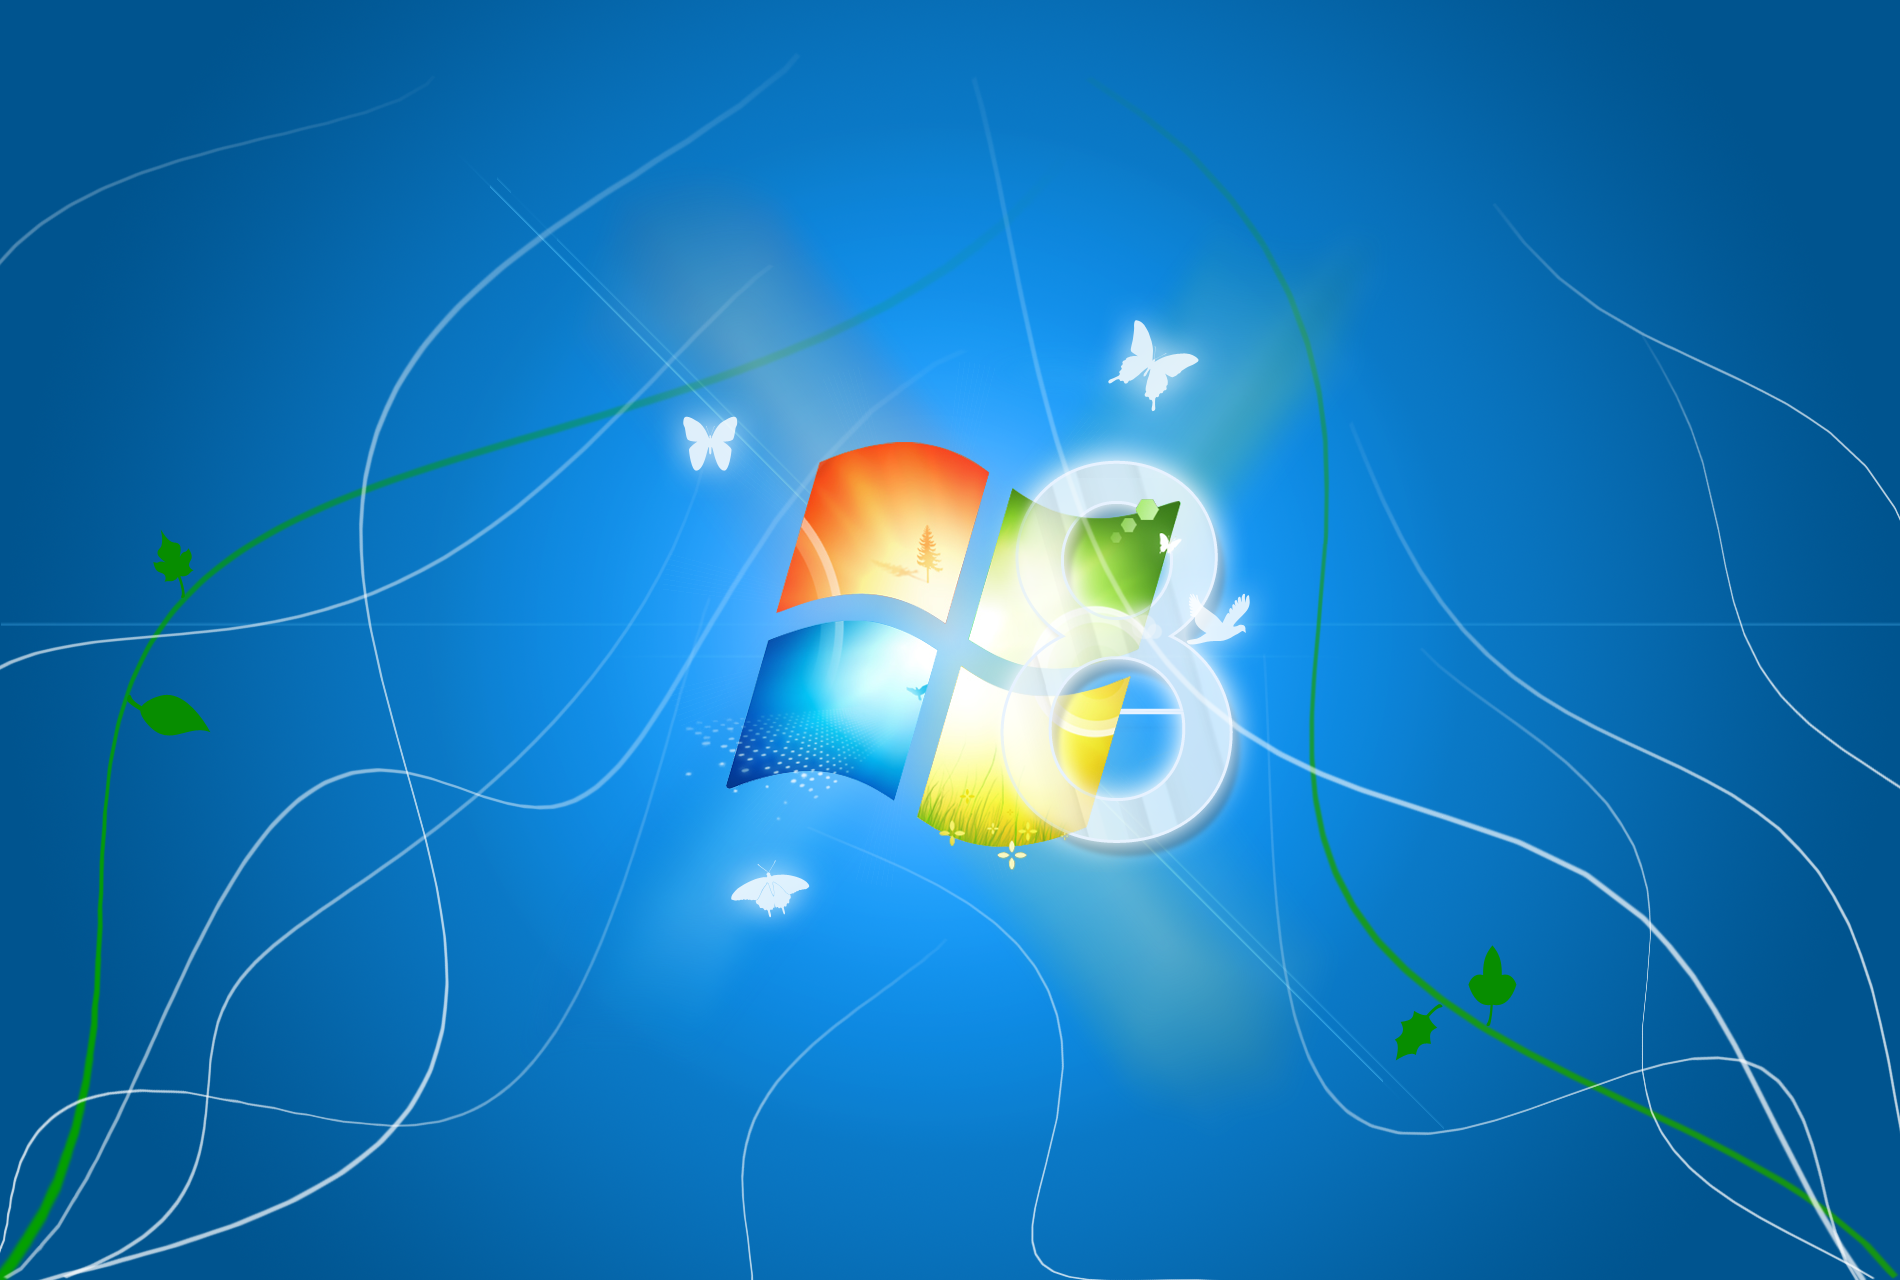 http://fc03.deviantart.net/fs71/f/2011/072/3/5/windows_8_dream_bliss_by_vinis13-d3bjv3j.png